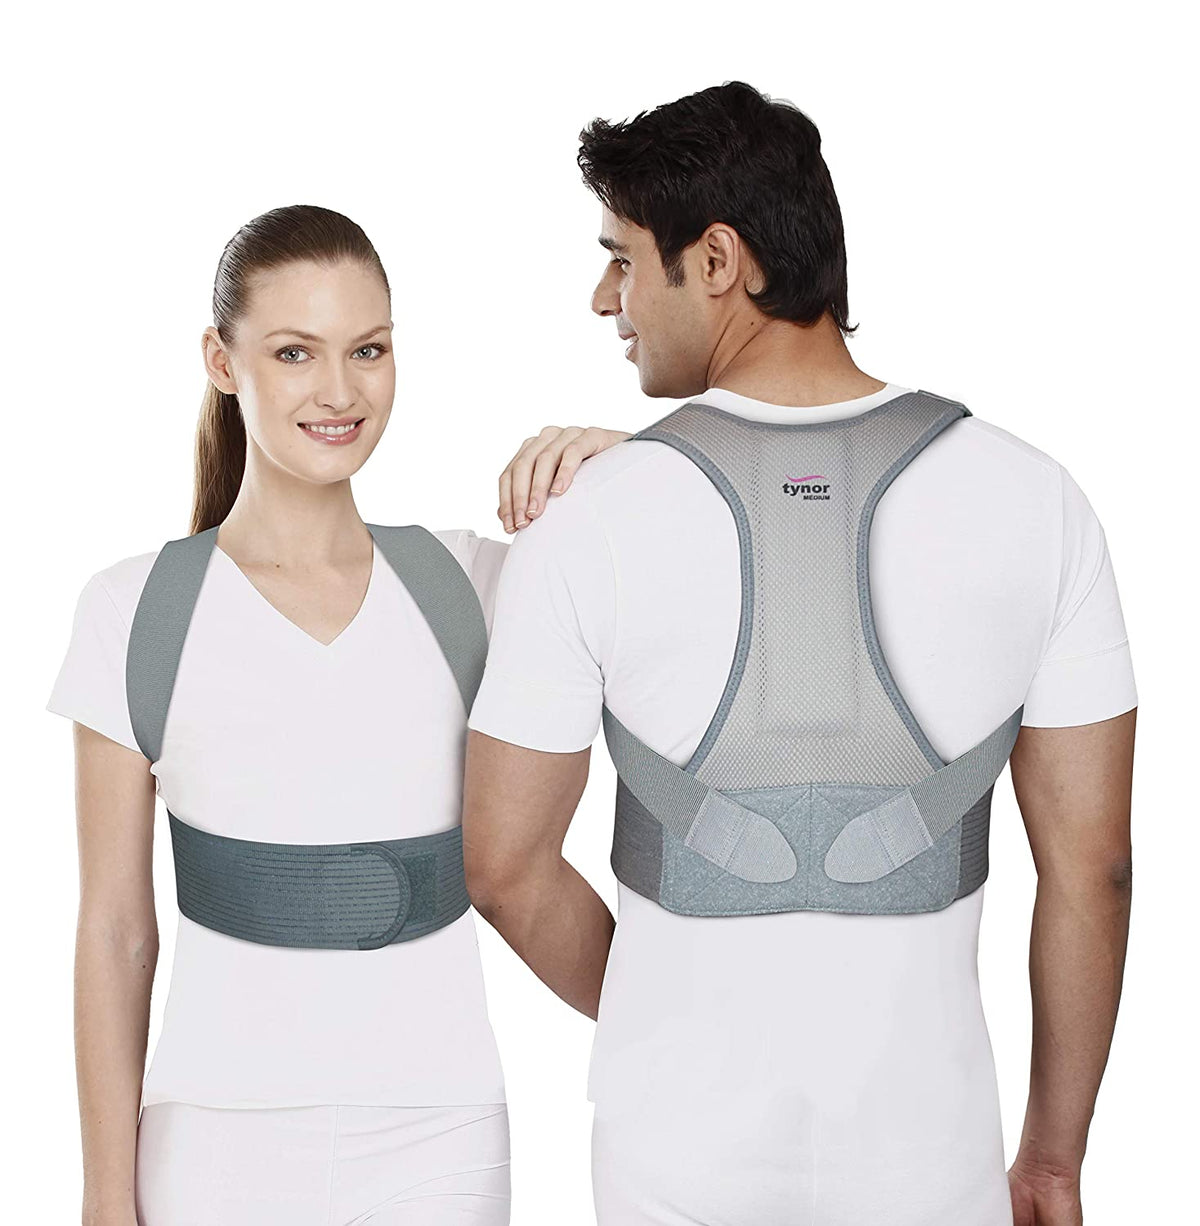 Tynor Australia Posture Corrector Body Belts & Braces Physio Supplies Orthopedic aids Physio Supports Australia